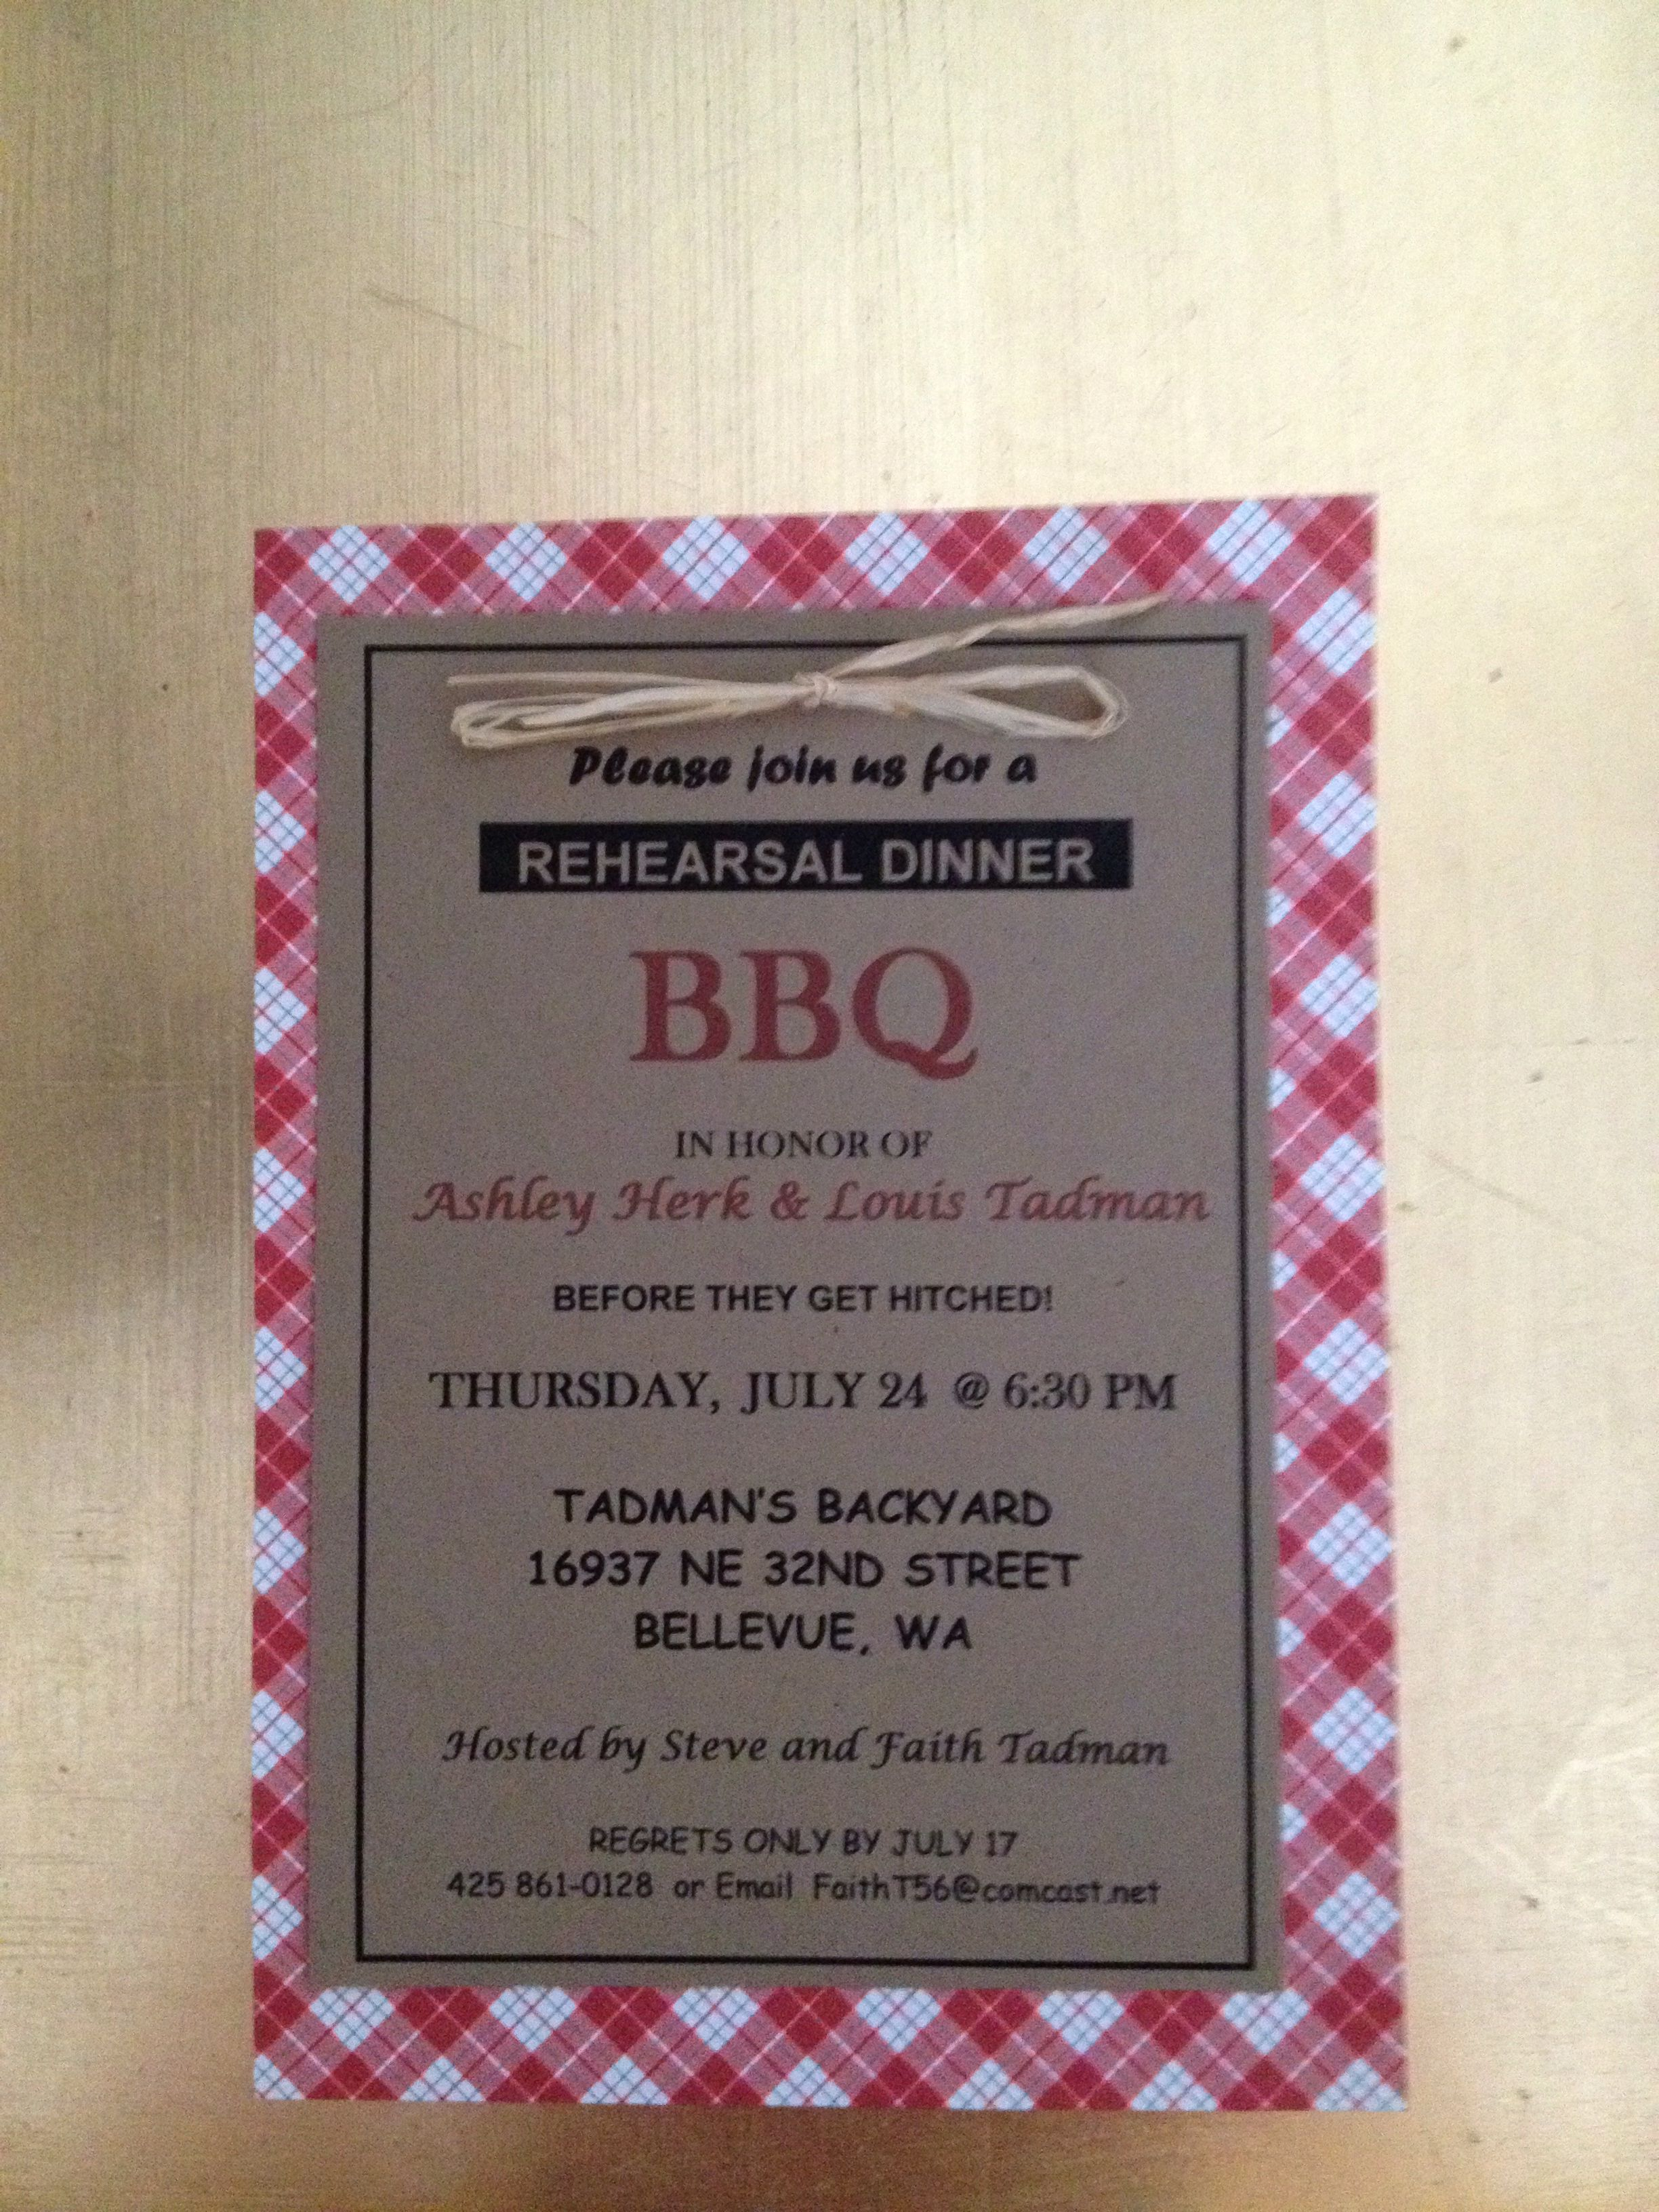 BBQ Wedding Rehearsal Dinner Invitation BBQ Wedding